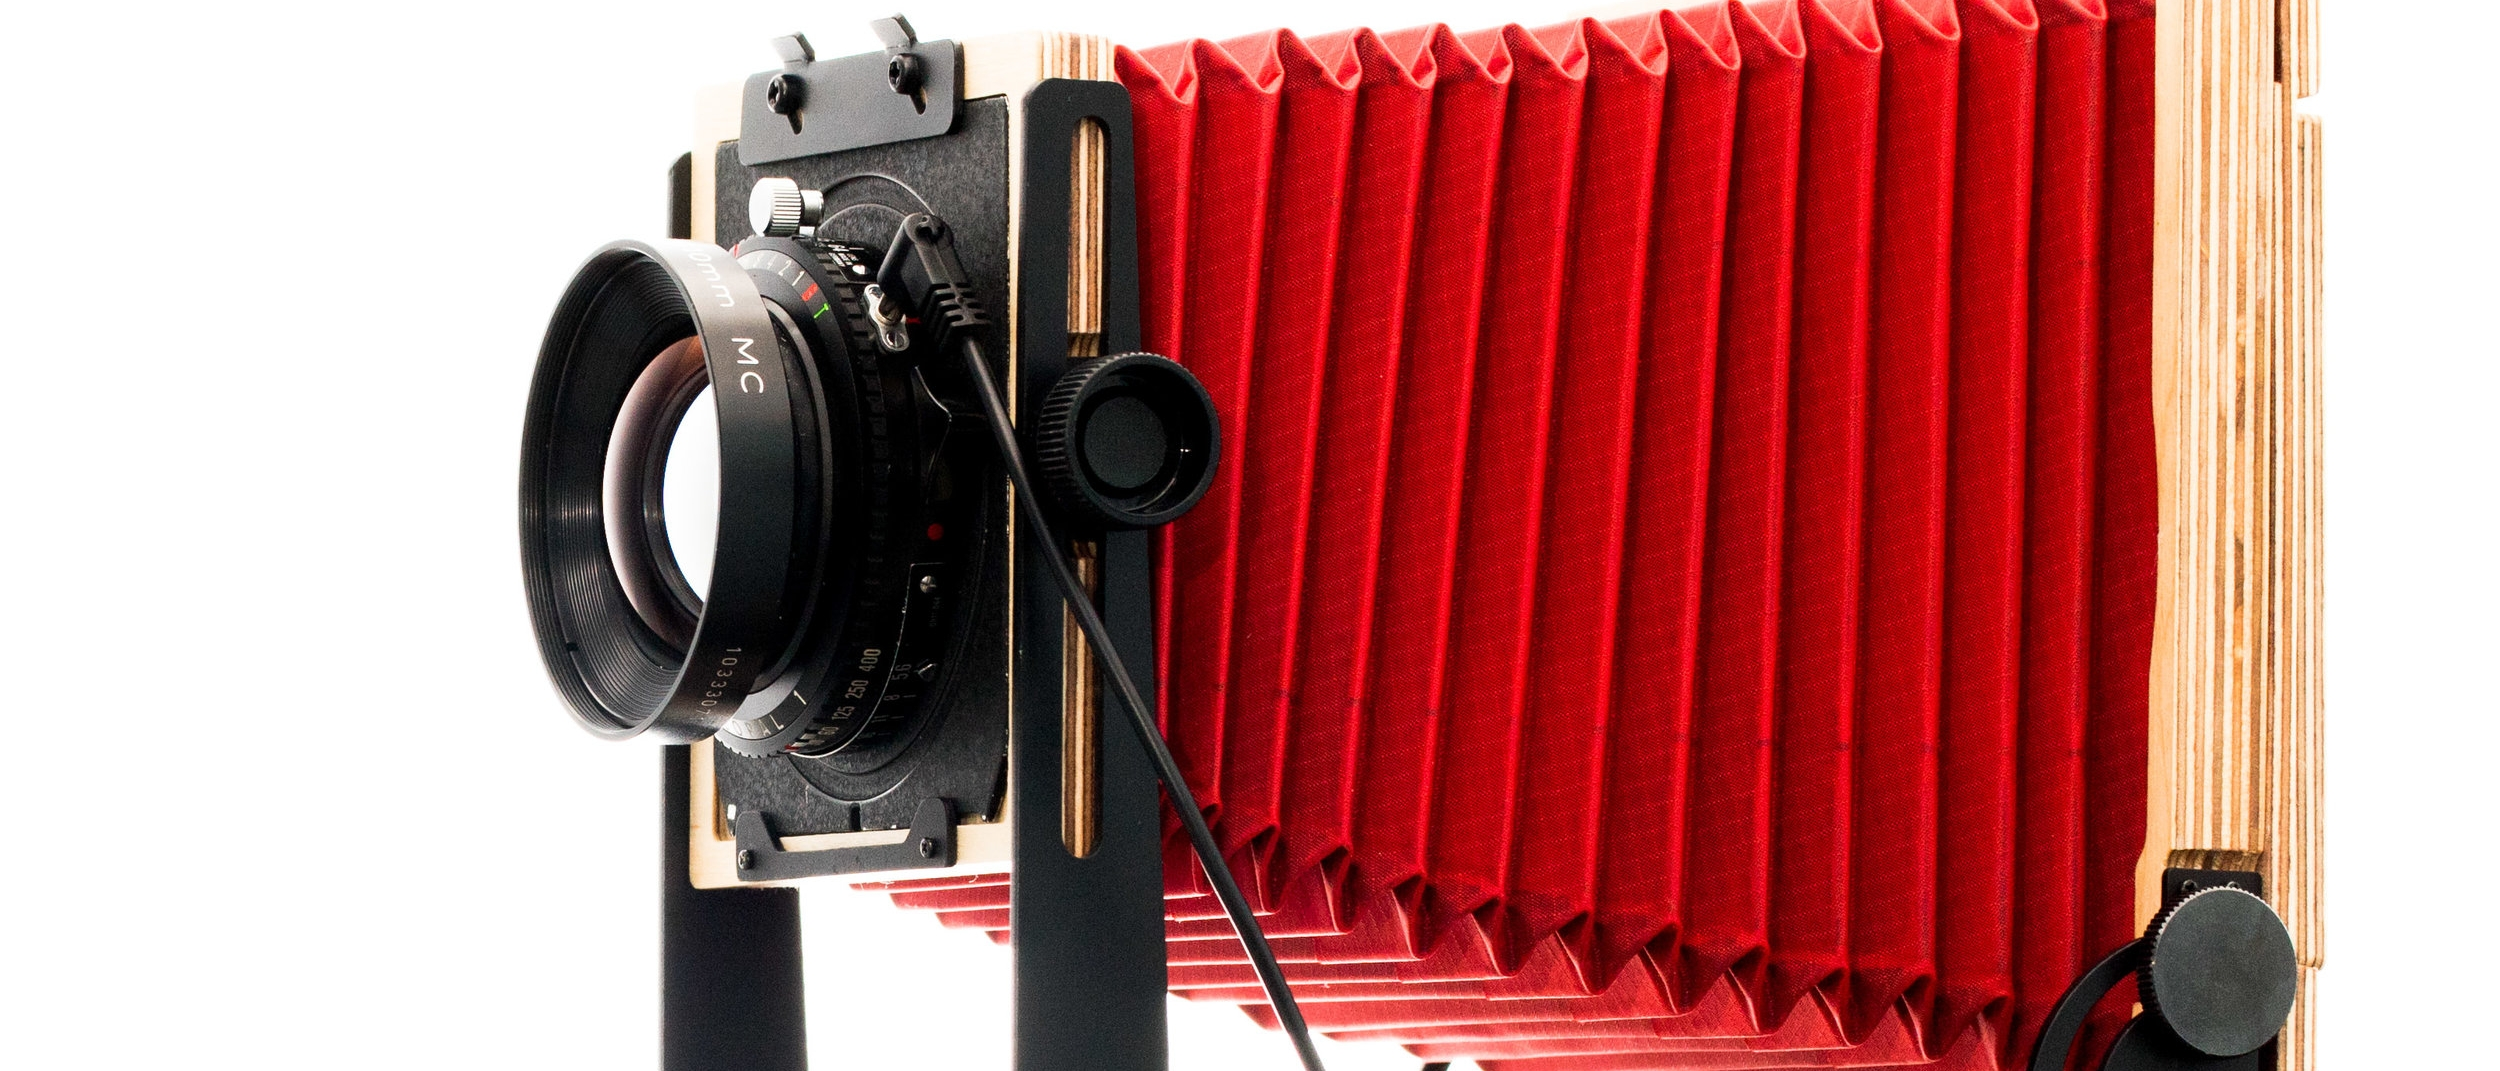 Intrepid 4x5 large format camera